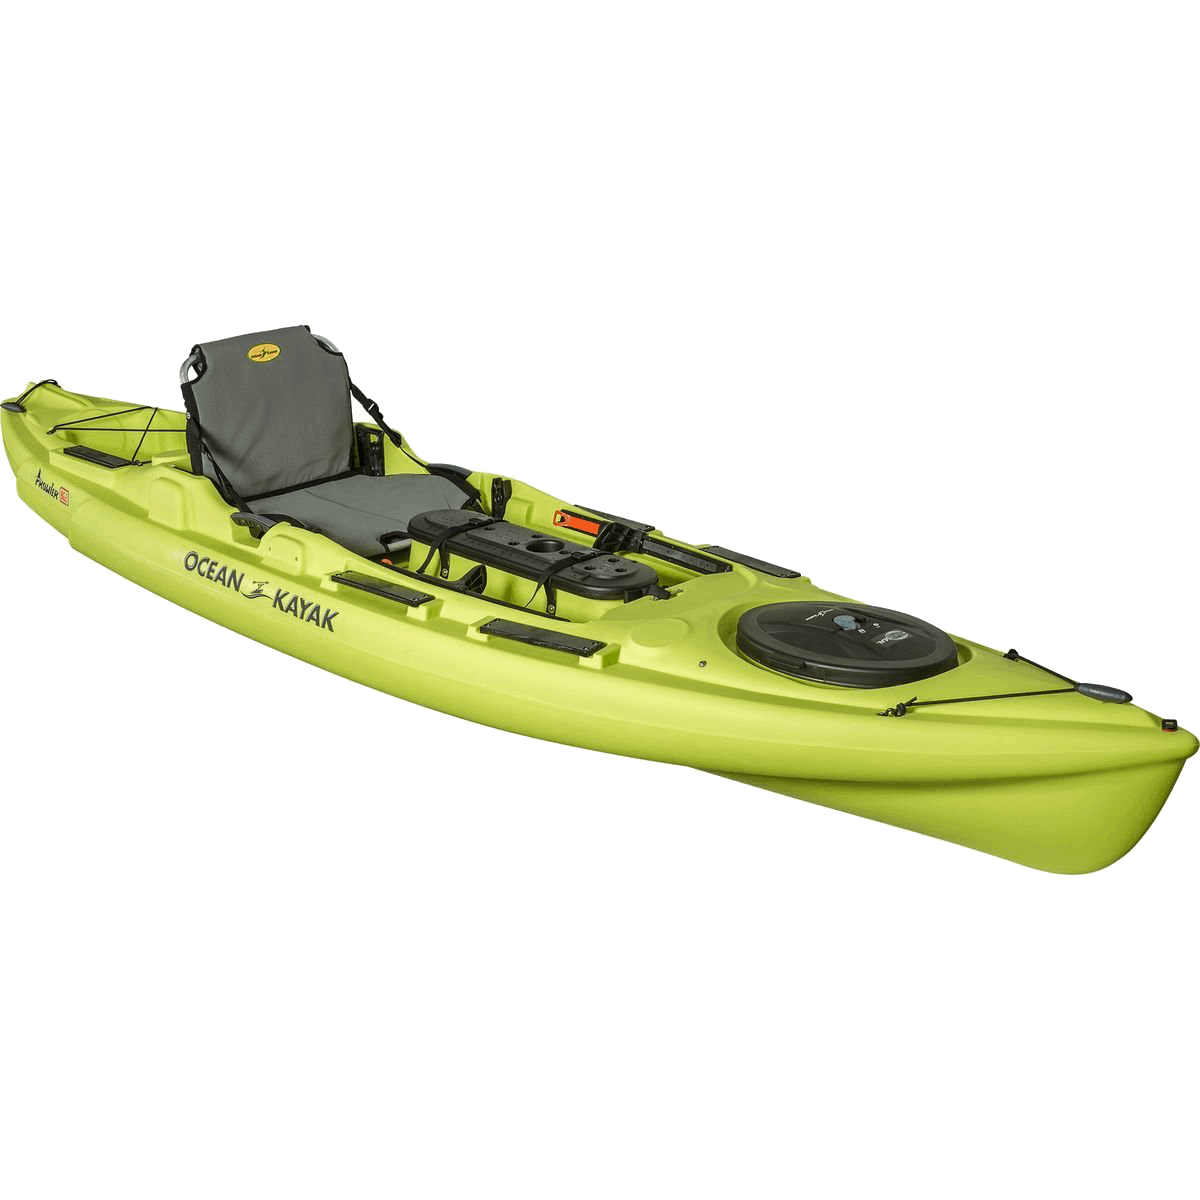 Ocean Kayak Prowler Big Game Angler II Best Fishing Kayak